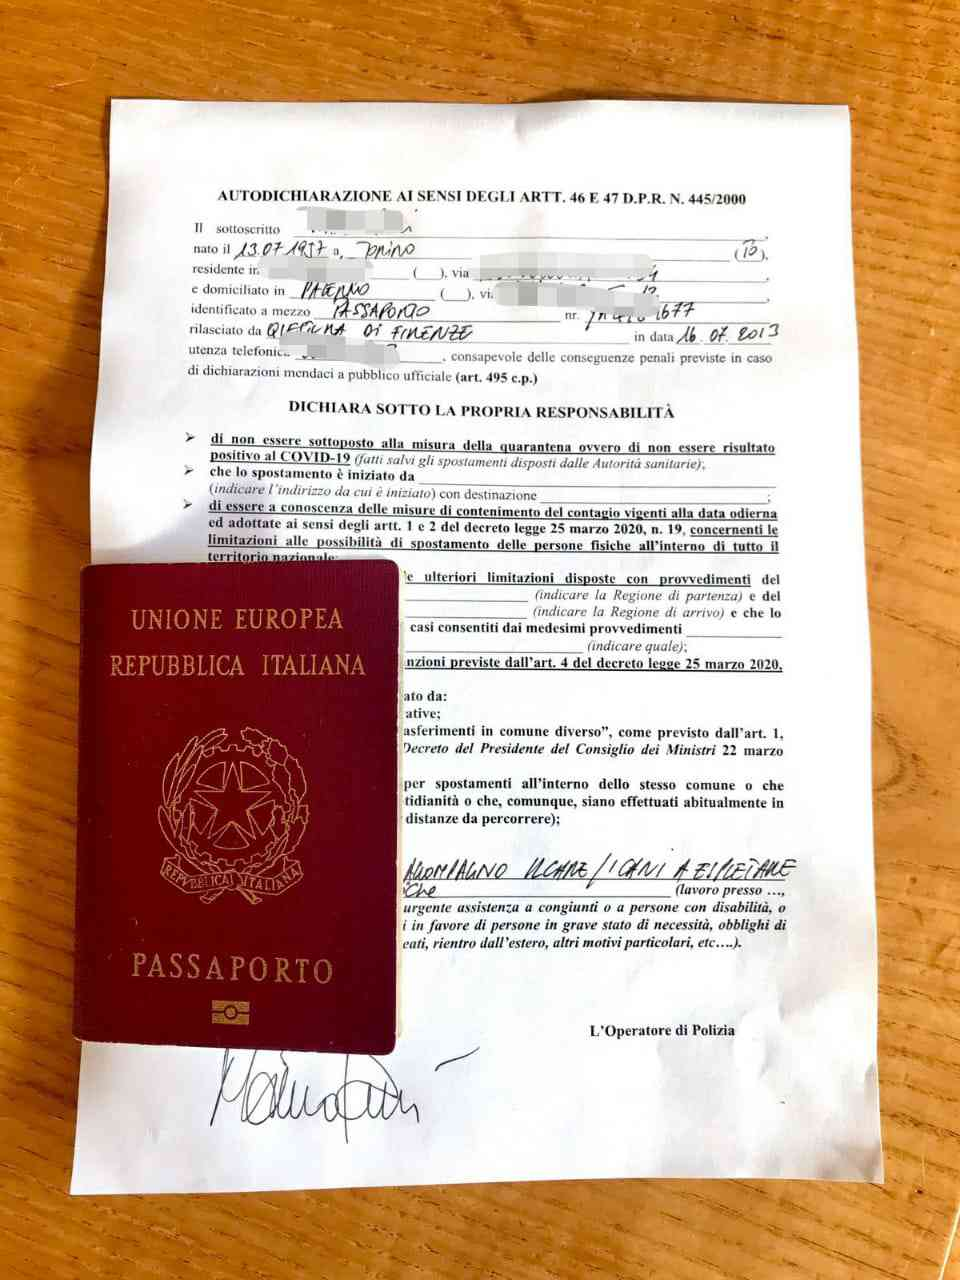 An image of a pass that allows Italians to move about, depending on need. The passport along with the pass is this person's identity document.